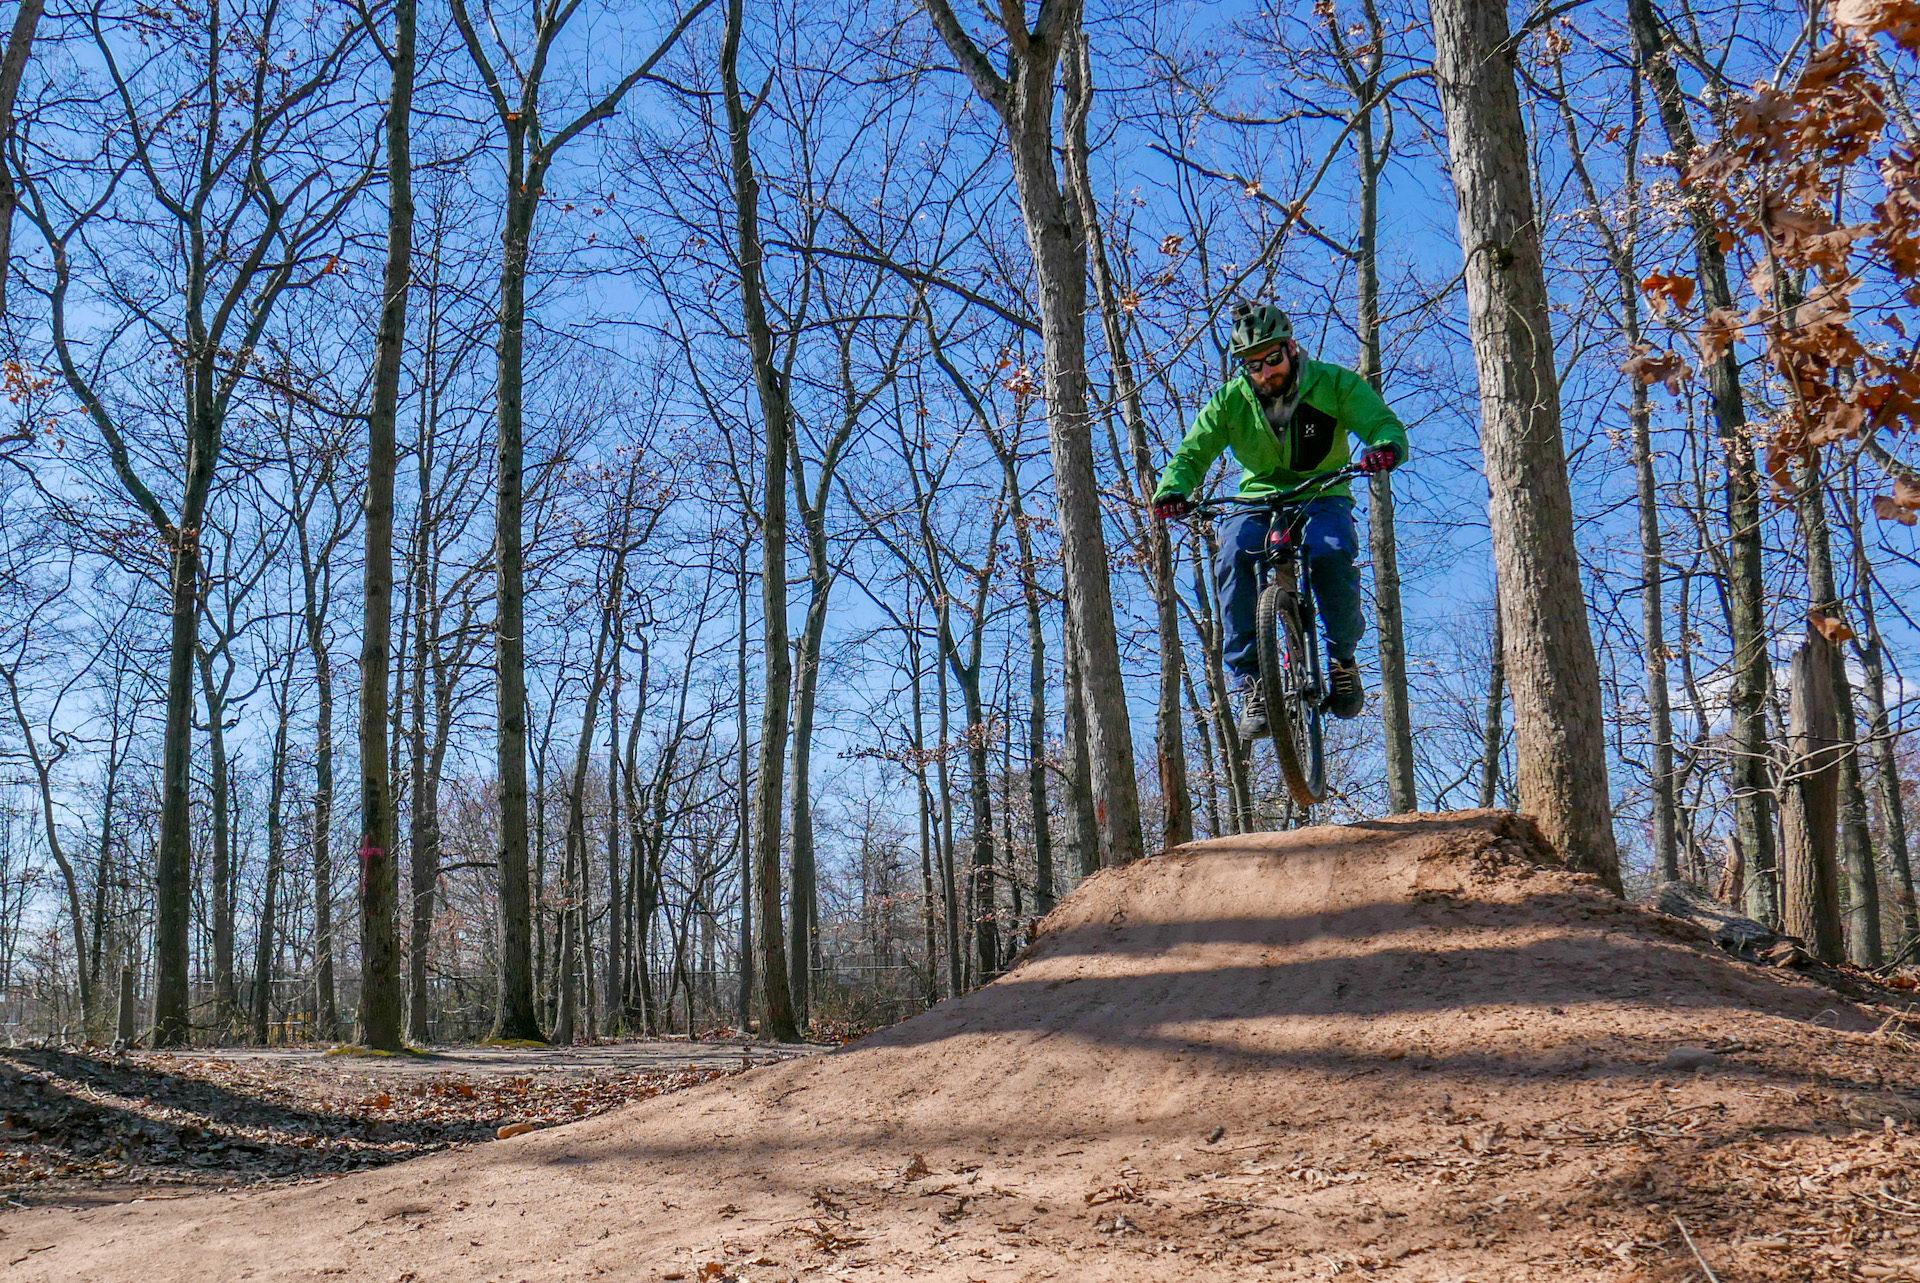 Bostjan hits some jumps at the Wolfe's Pond Dirt Park.